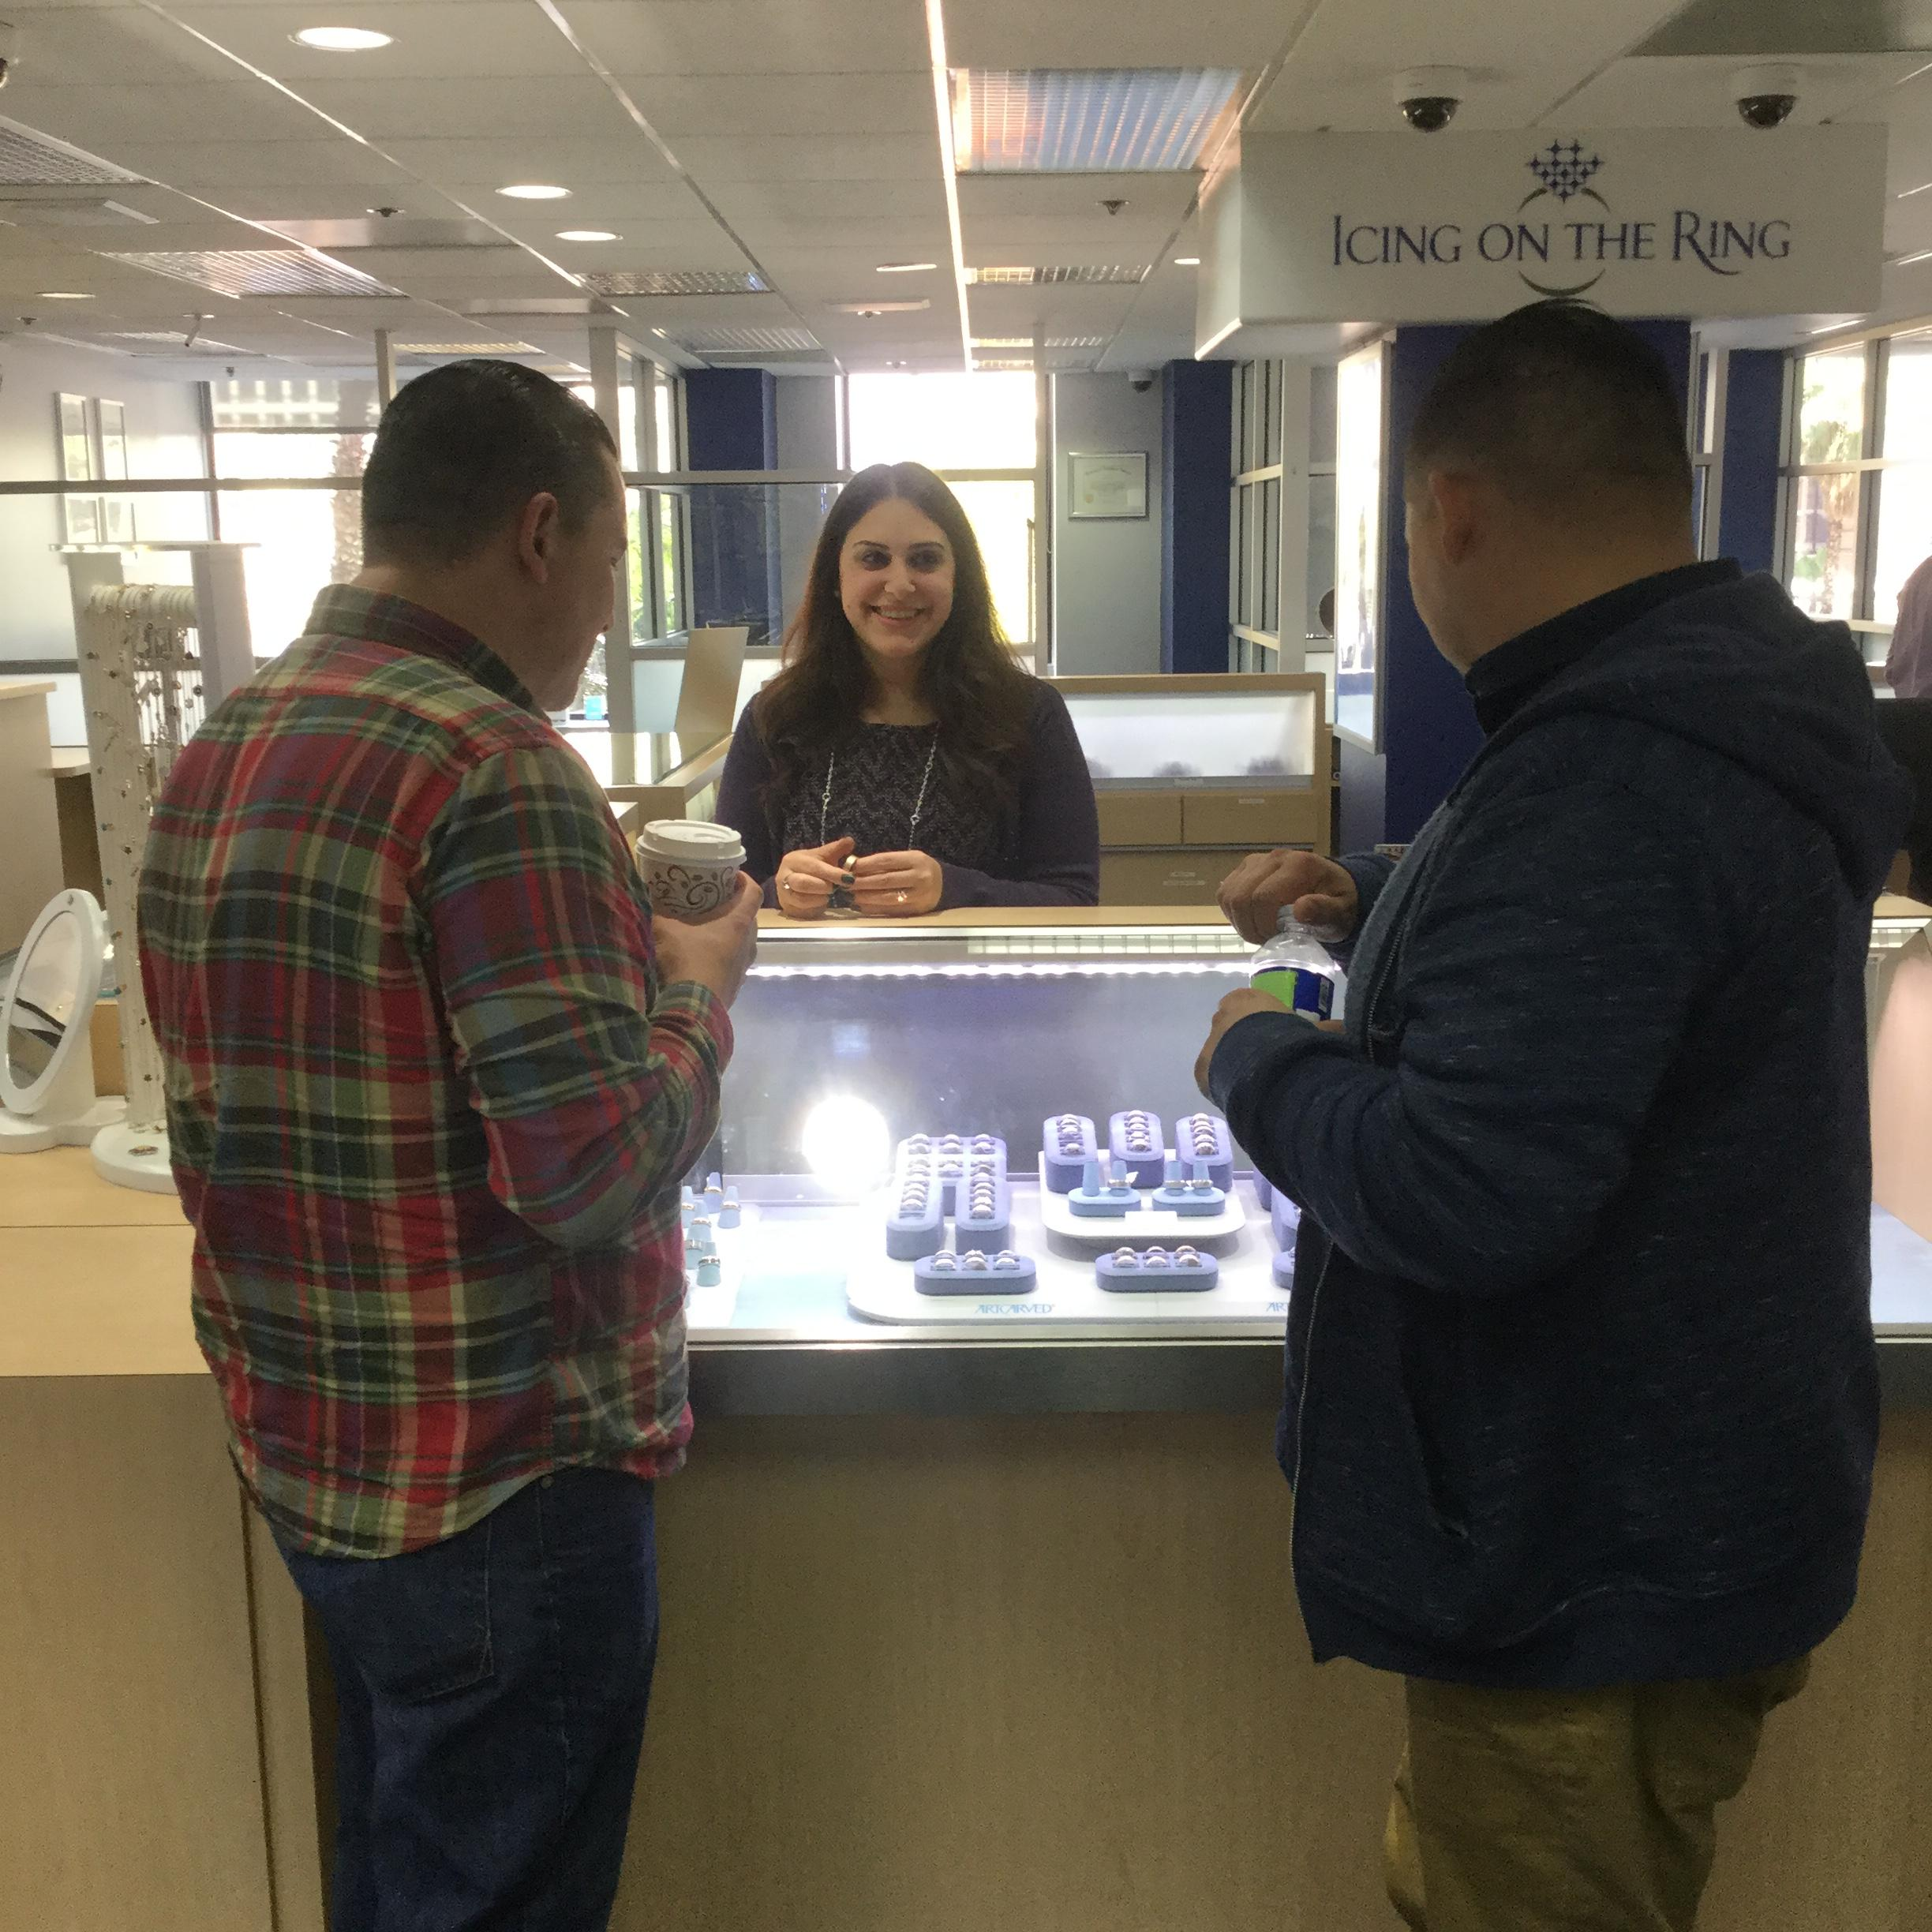 Ani from Icing On The Ring showing rings to potential customers